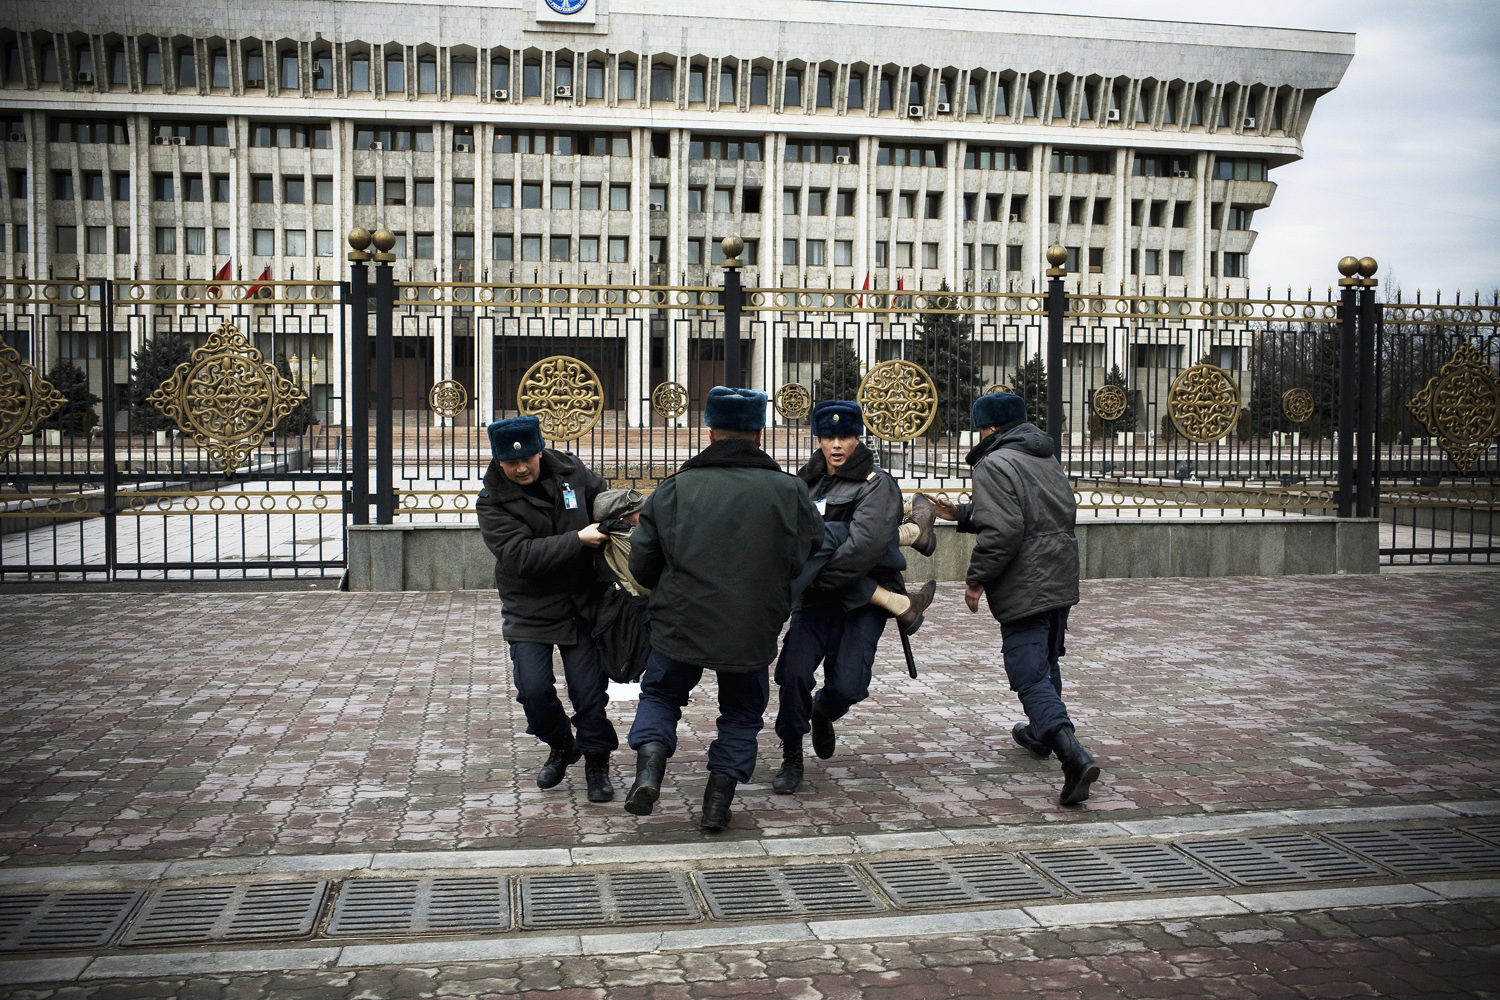 2009. Human rights activist Maxim Kuleshov is violently arrested at a protest calling for the resignation of President Bakiyev in Bishkek. Later Kuleshov was placed in the city's psychiatric facility, which once housed Soviet dissidents.